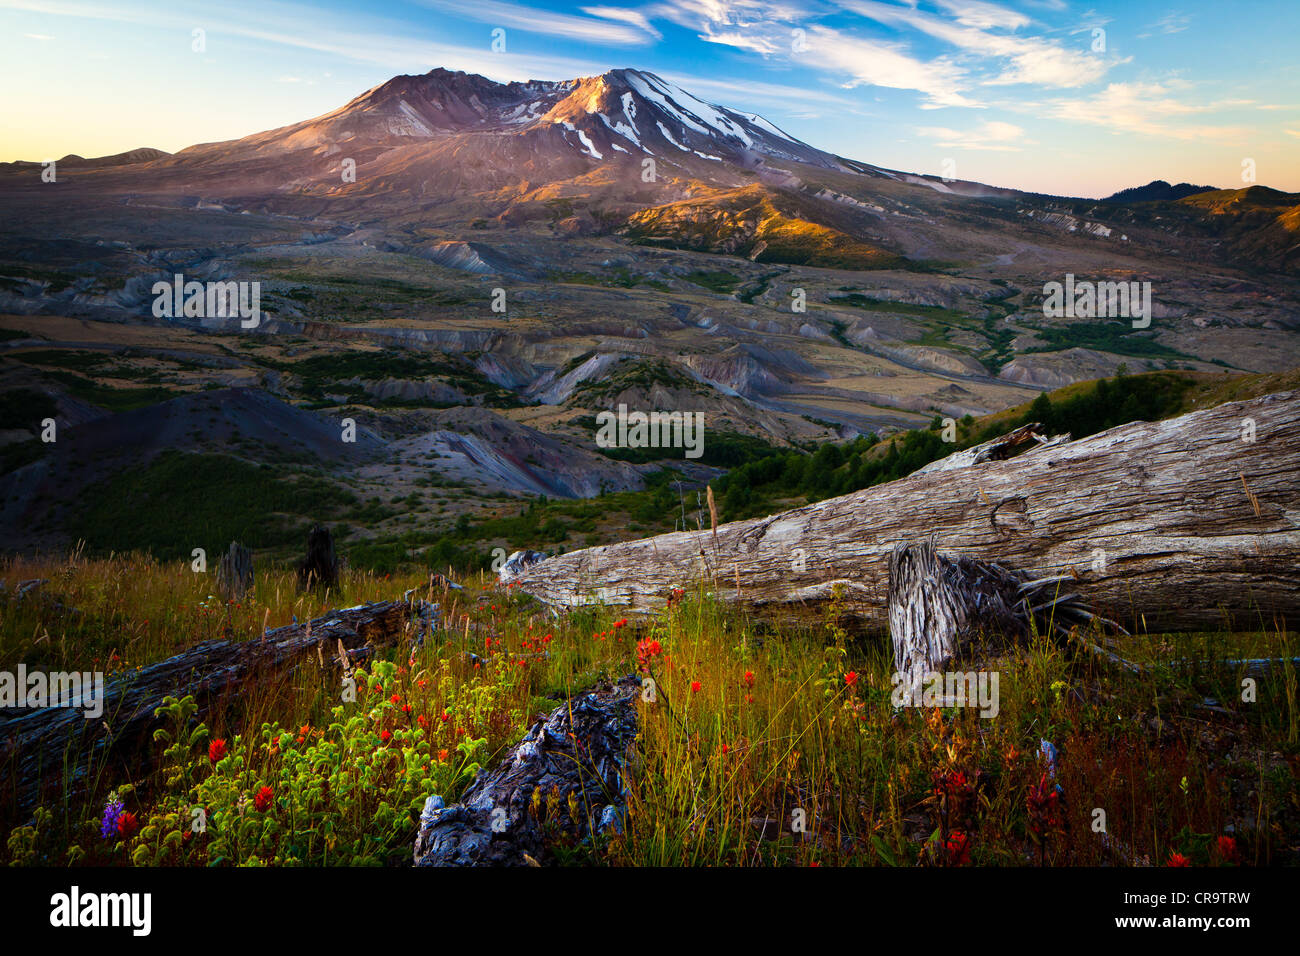 Mount St. Helens National Volcanic Monument - Stock Image